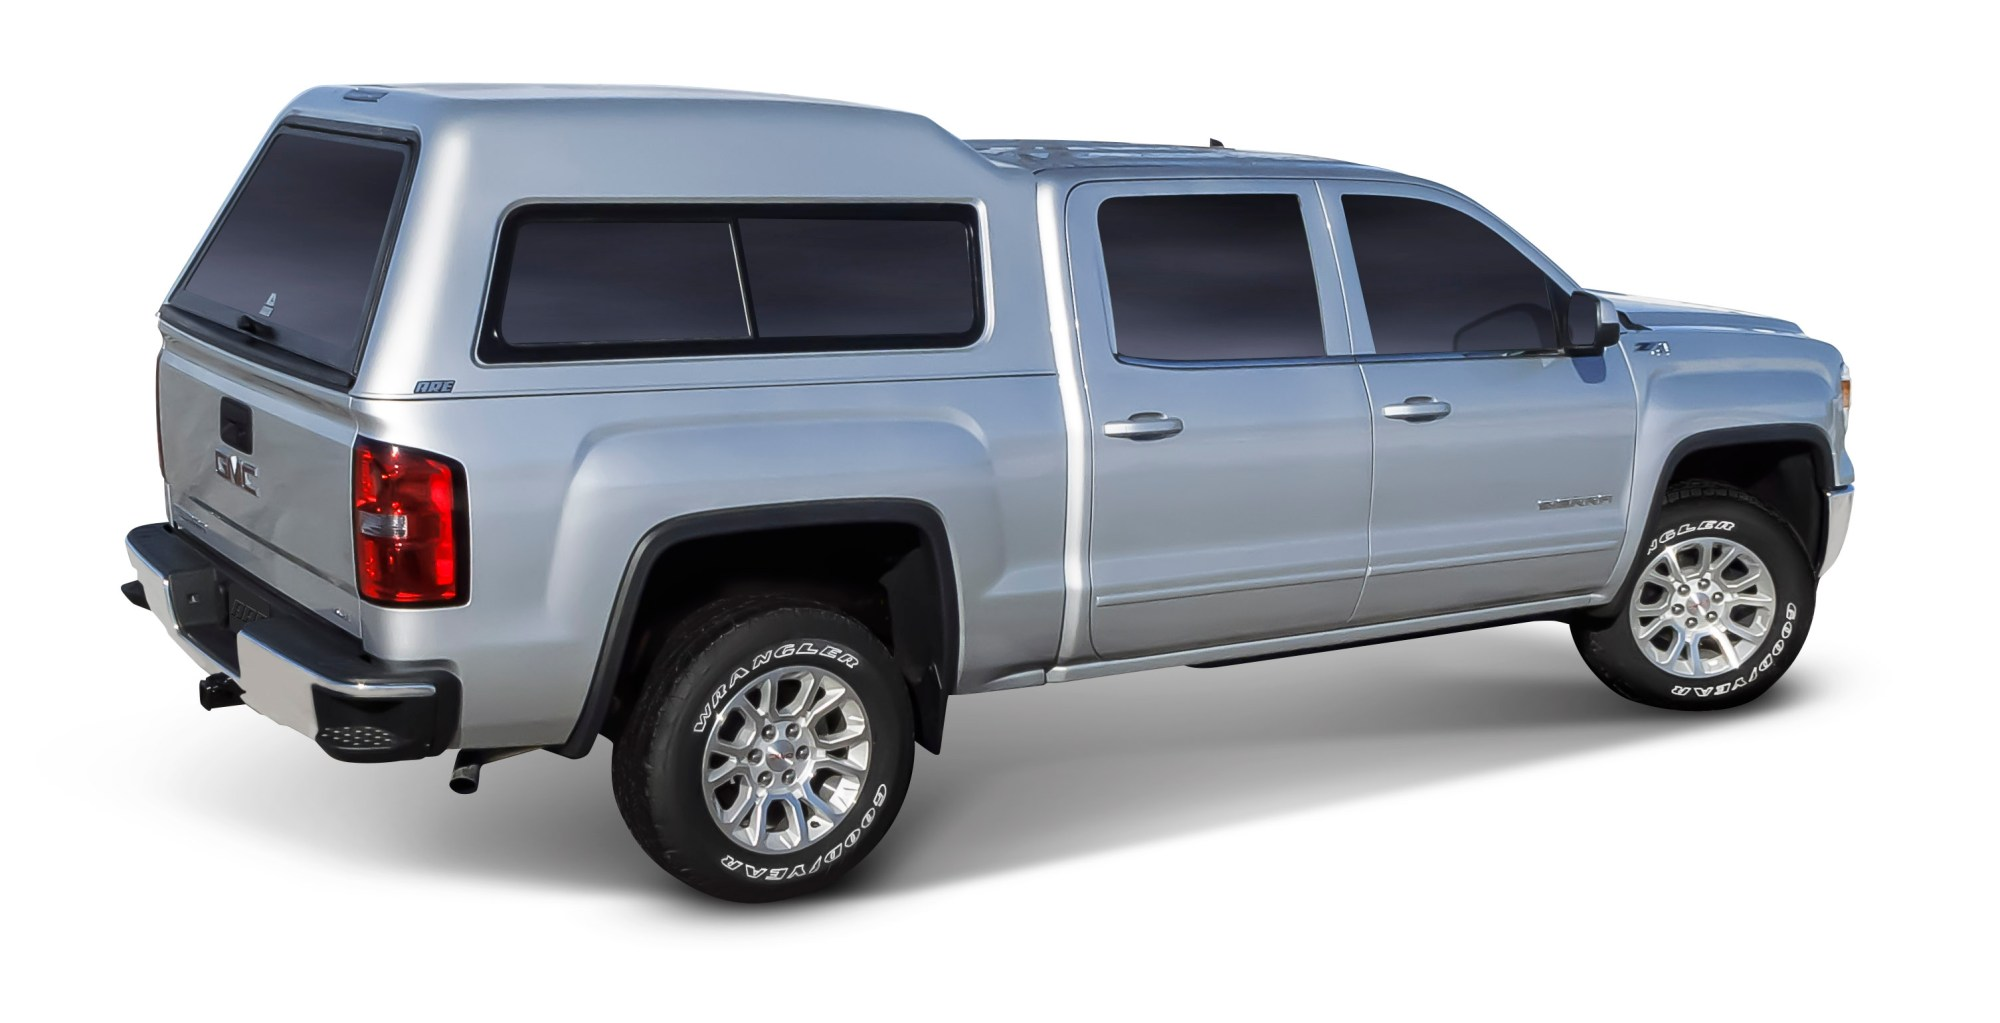 hight resolution of mx series on 2014 gmc sierra